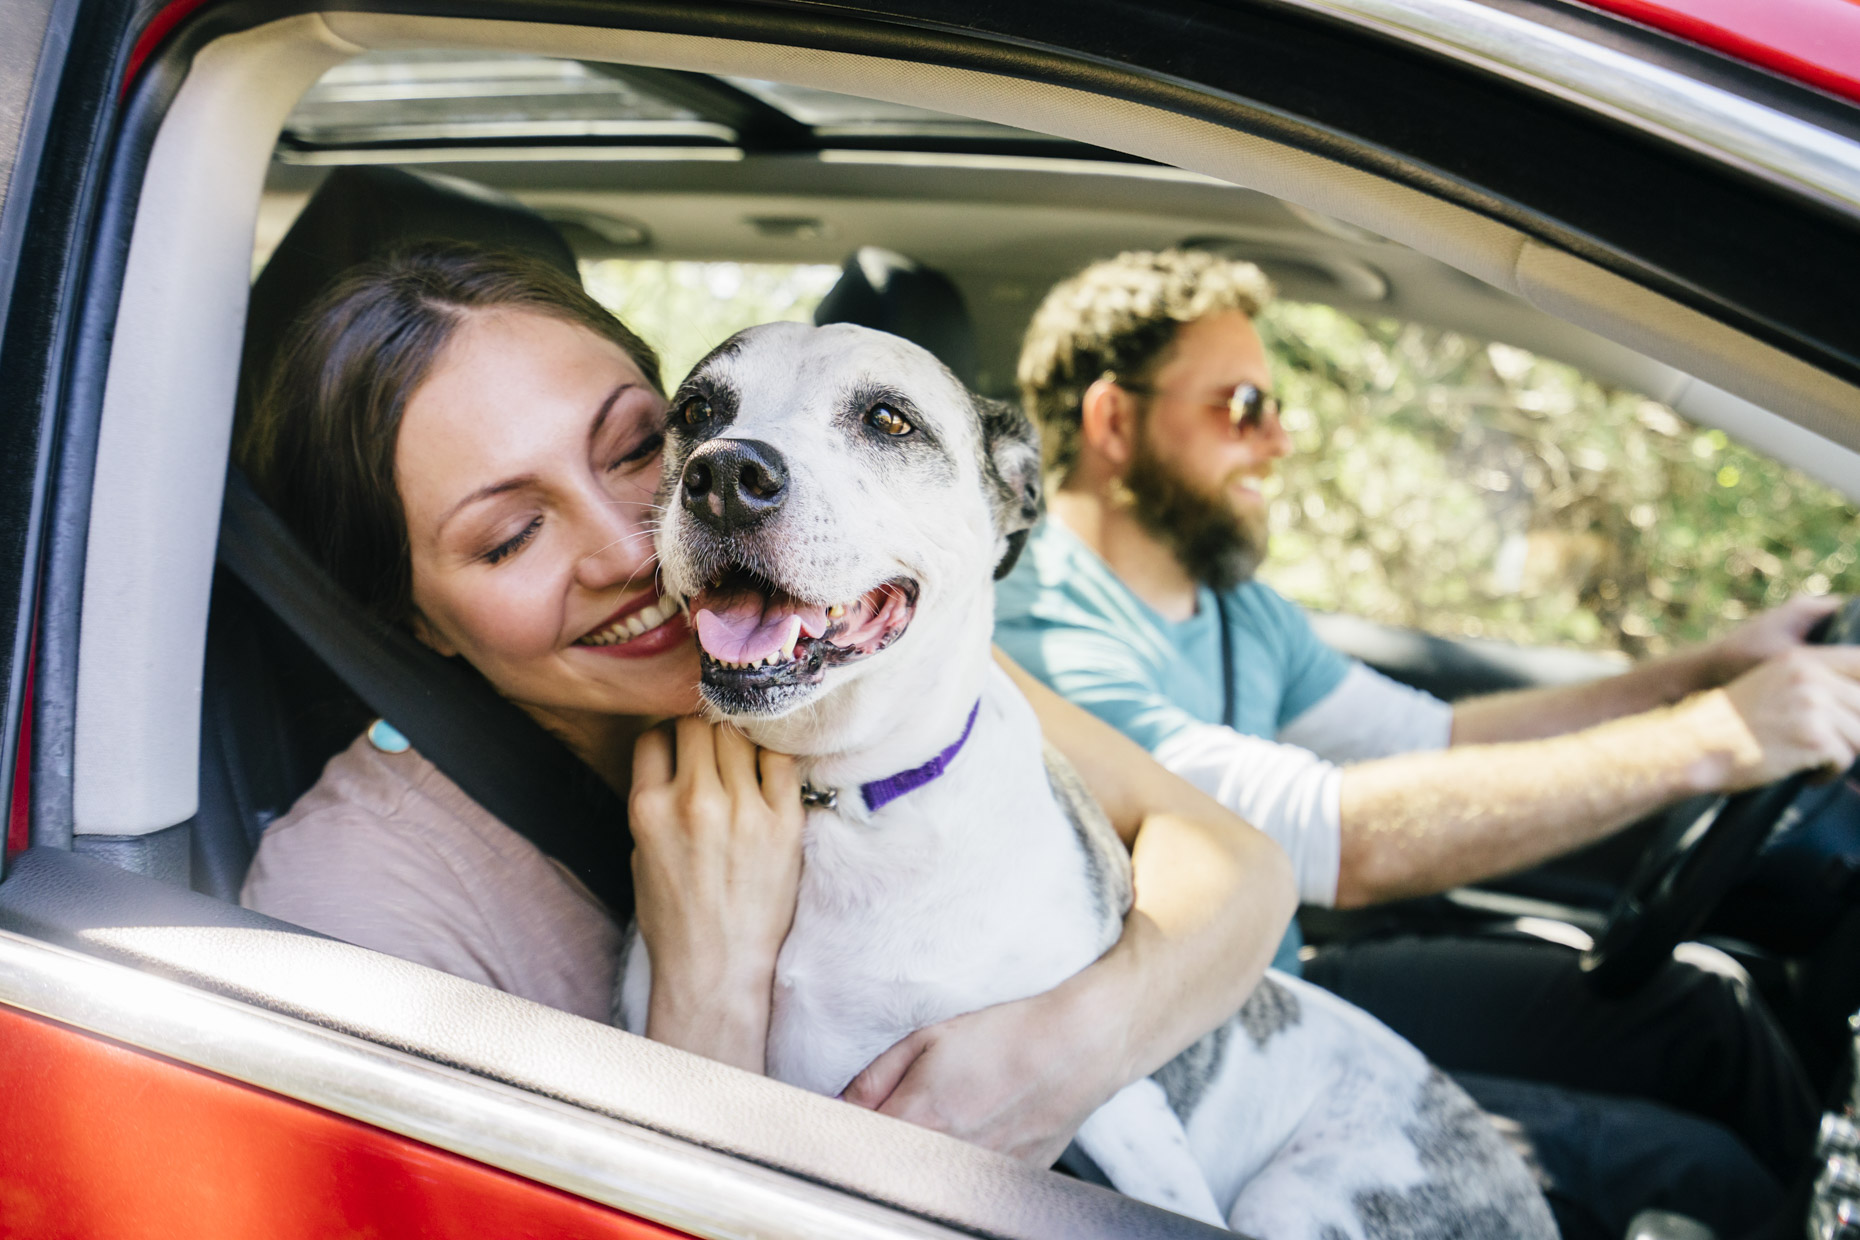 Woman riding in car with happy dog on lap